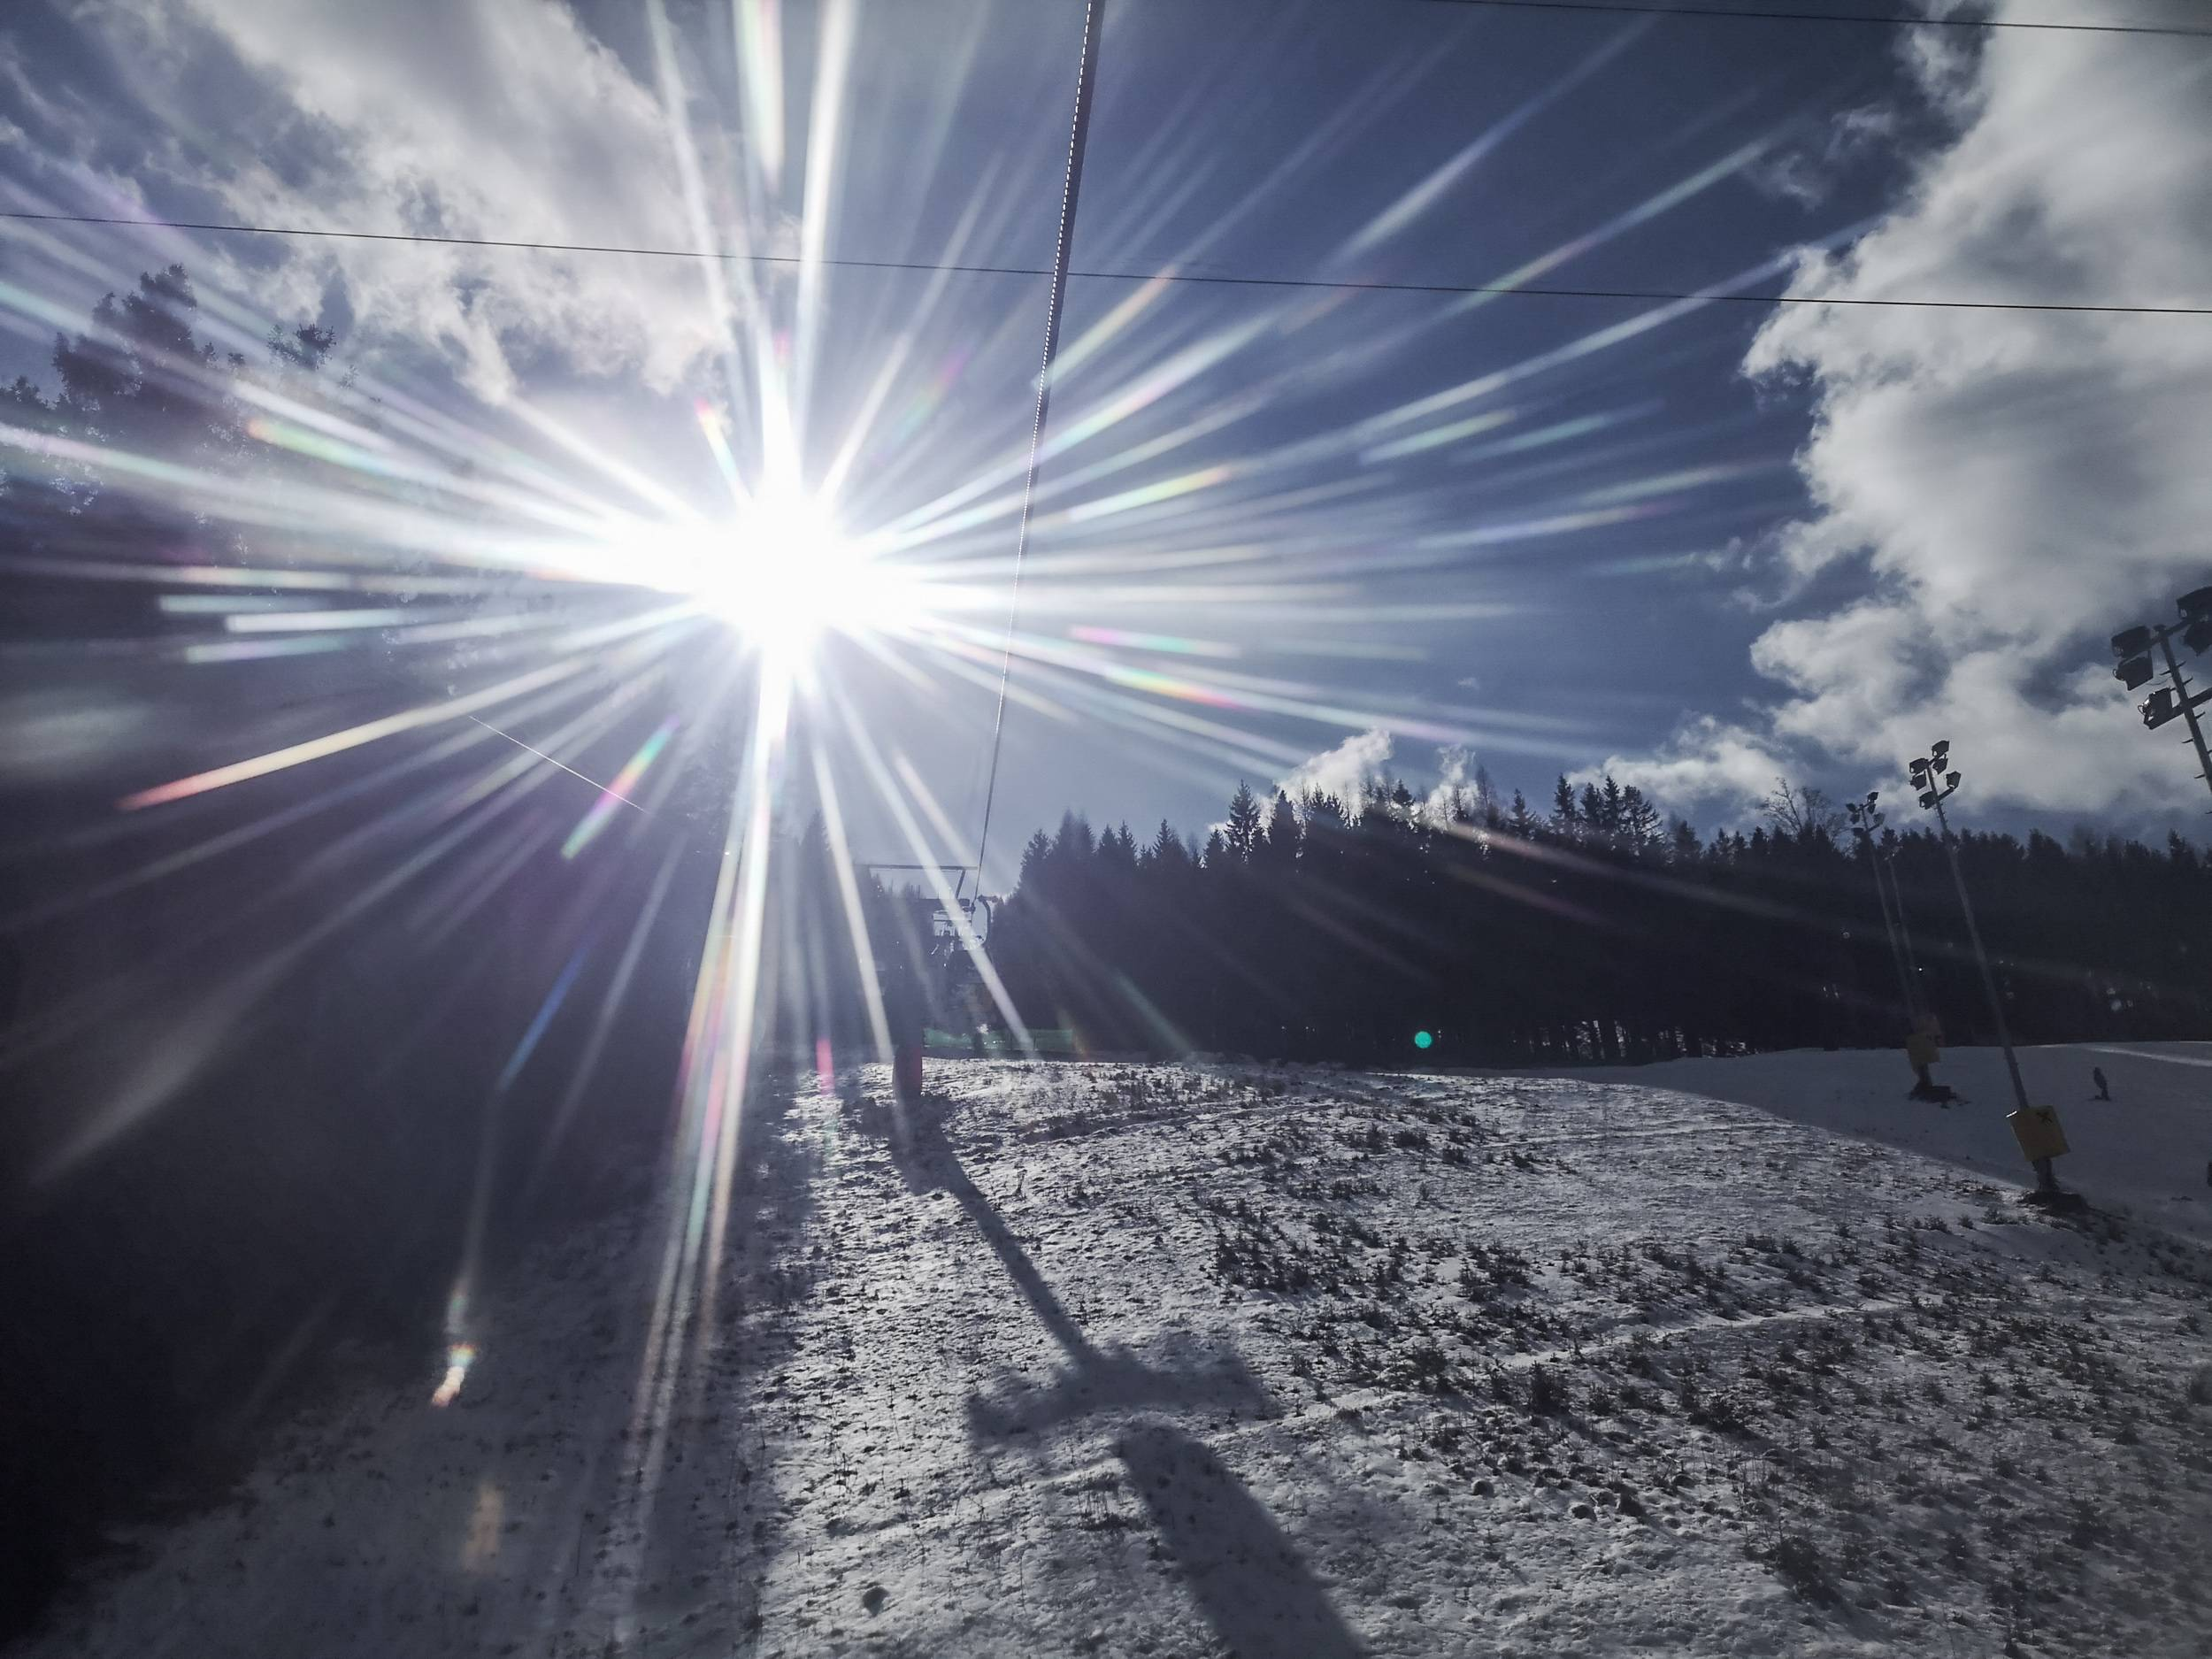 Be sure to take your sun glasses as the sun combined with snow can blind you. Photo by Alis Monte [CC BY-SA 4.0], via Connecting the Dots